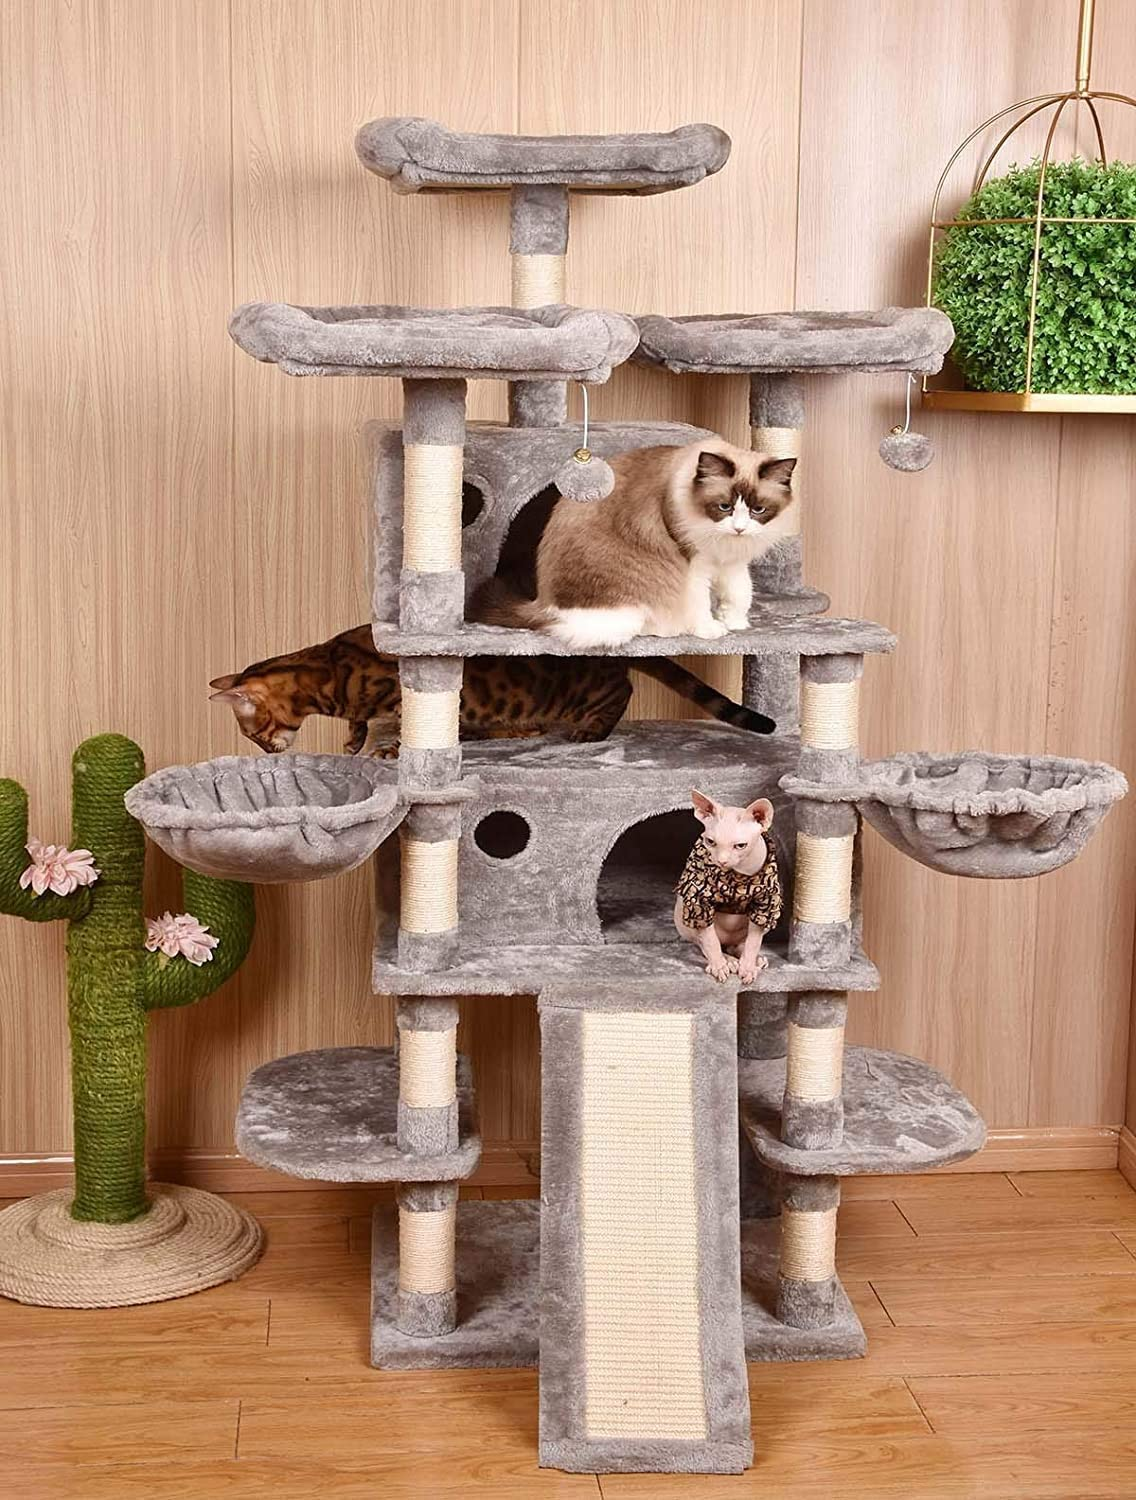 Amolife Heavy Duty 68 Inch Multi Level Cat Tree King X Large Size Cat Tower Cat Condo With Scratching Posts Kitty Pet Play House Suitable For Large Cat Big Cat Light Grey Pet